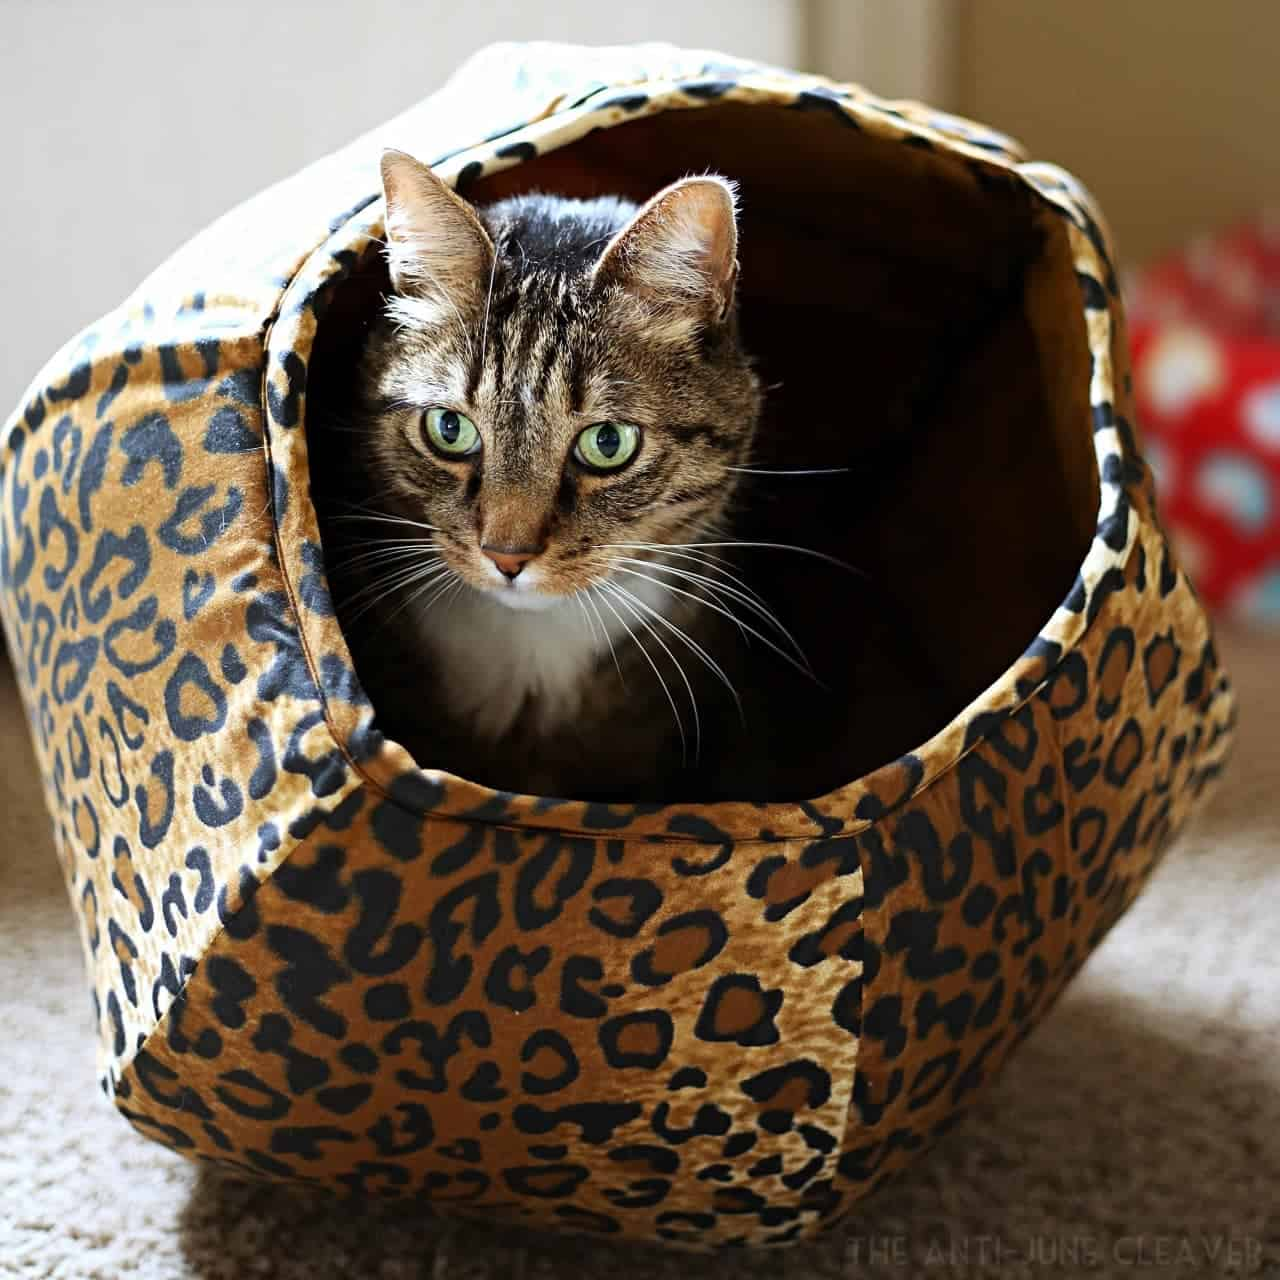 The Cat Ball cat bed: a cozy place for a cat nap @TheCatBall